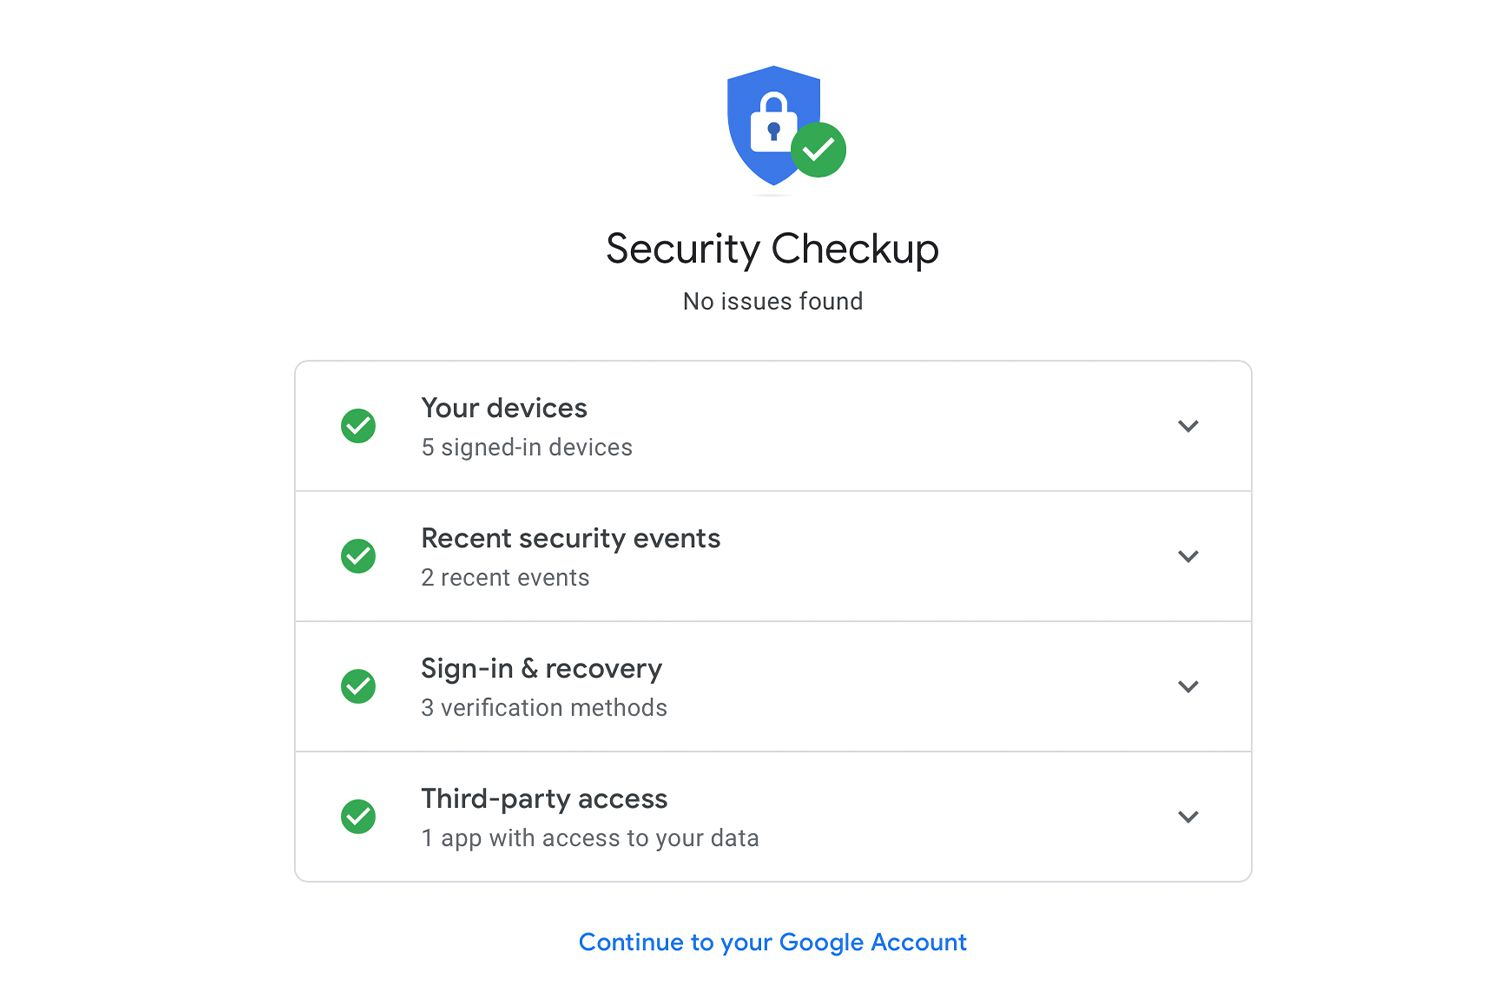 A Security Checkup that reports no issues found